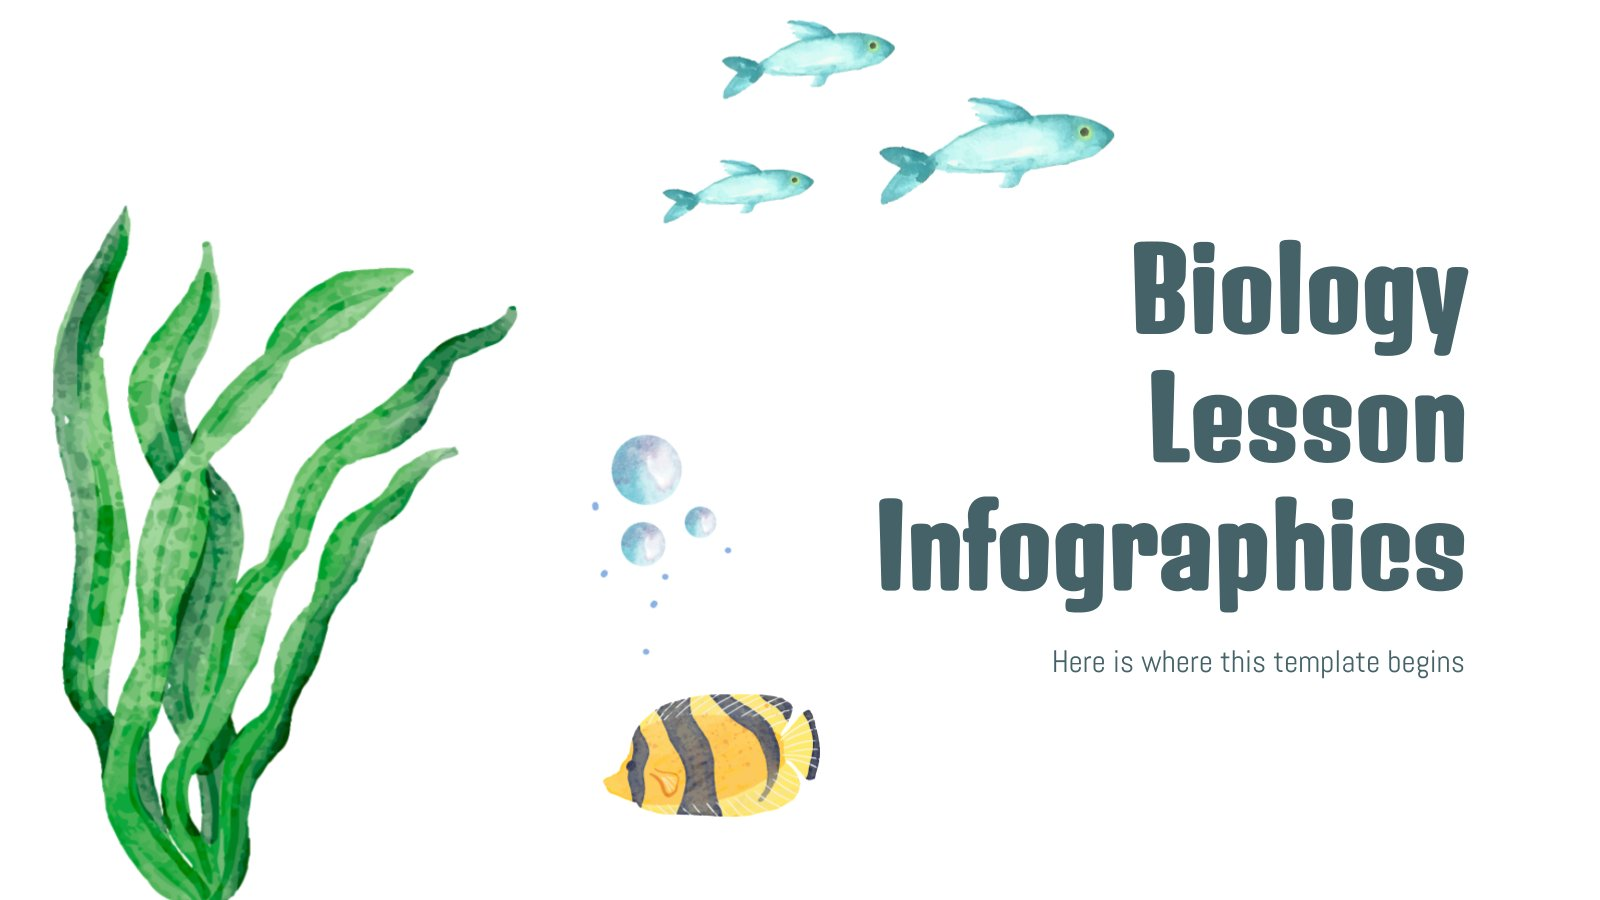 Biology Lesson Infographics presentation template